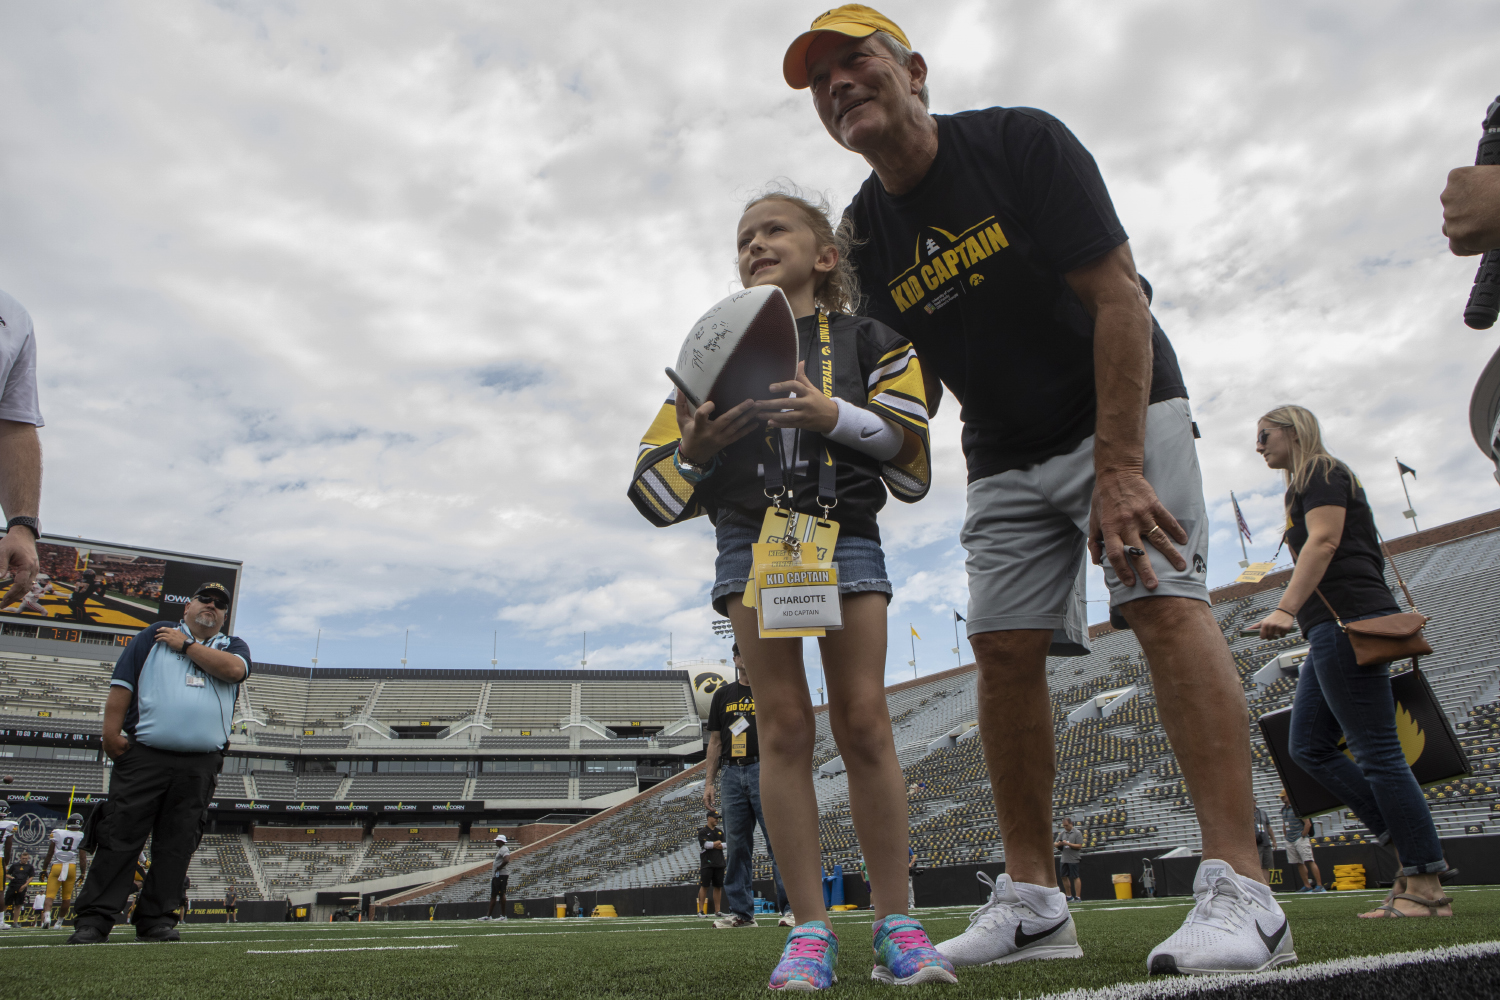 Kid Captain Charlotte Keller and Iowa football head coach Kirk Ferentz pose for a picture on Kinnick's field at Kids Day at Kinnick on Saturday, Aug. 10, 2019. Kids Day at Kinnick is an annual event for families to experience Iowa's football stadium, while watching preseason practice and honoring this year's Kid Captains.